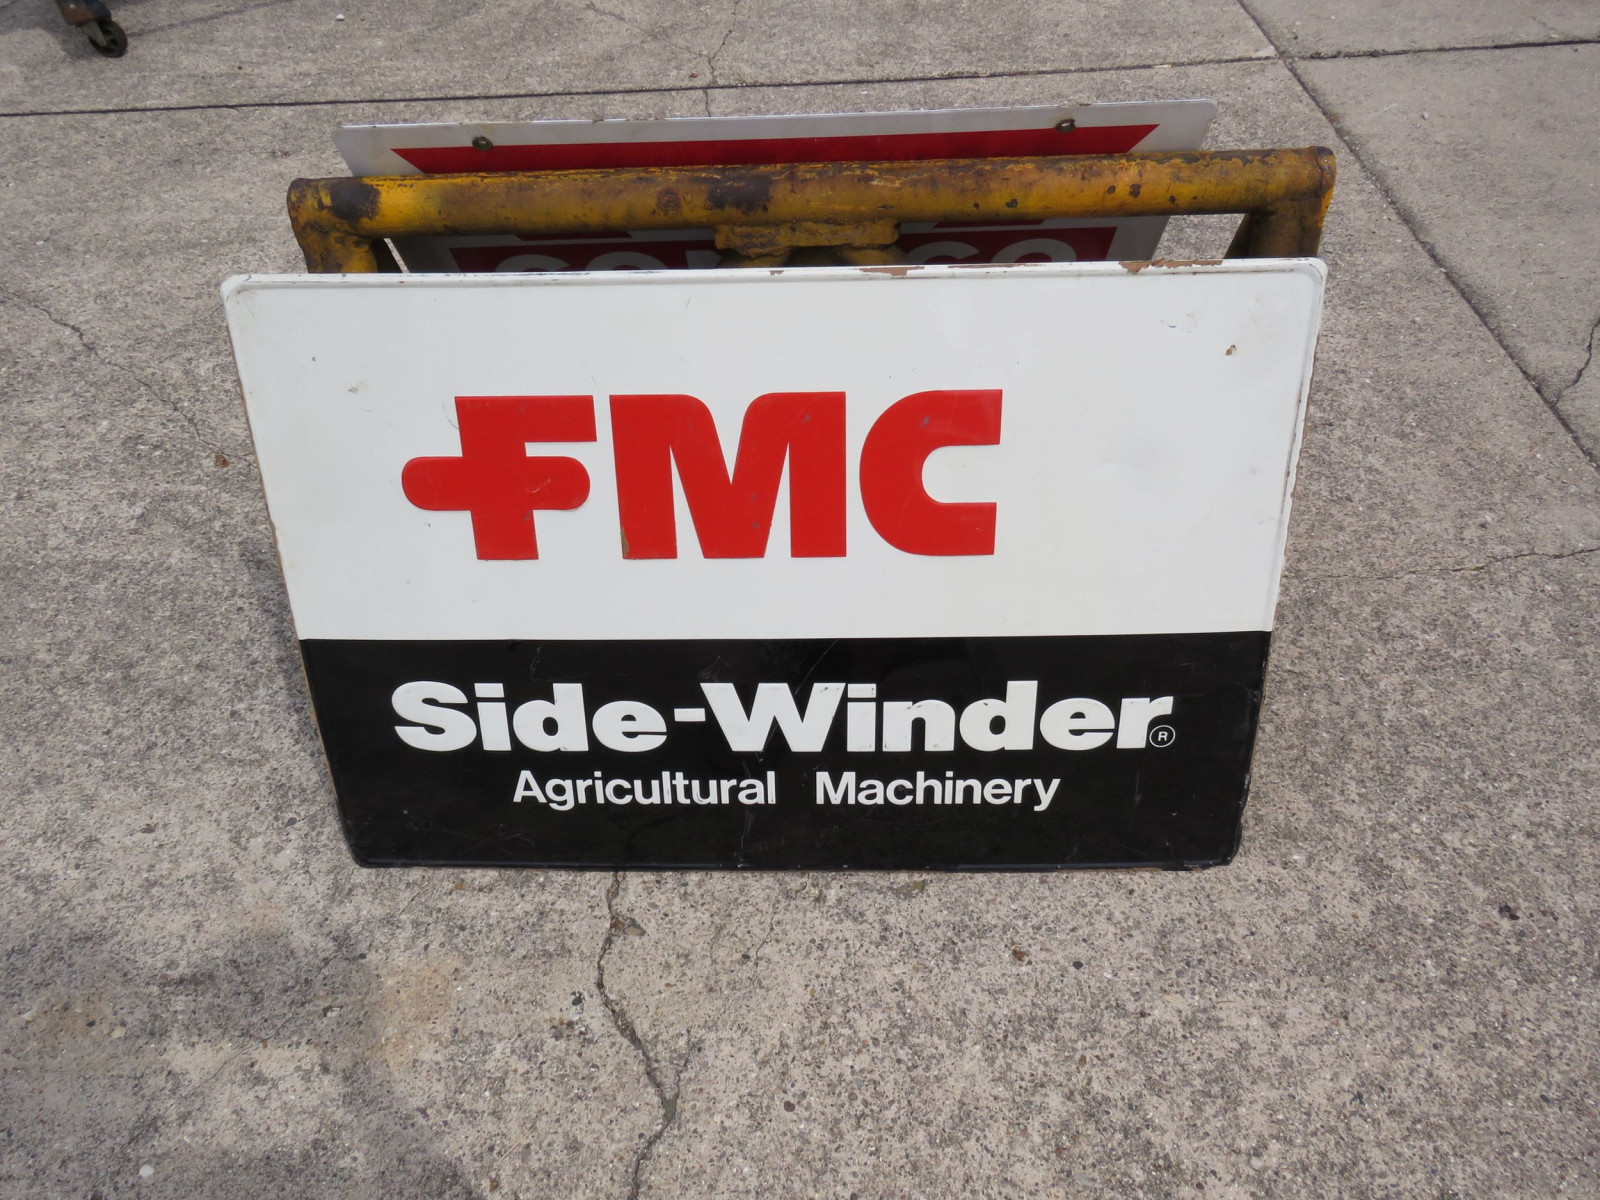 FMC Ag Equipment Sign - Image 1